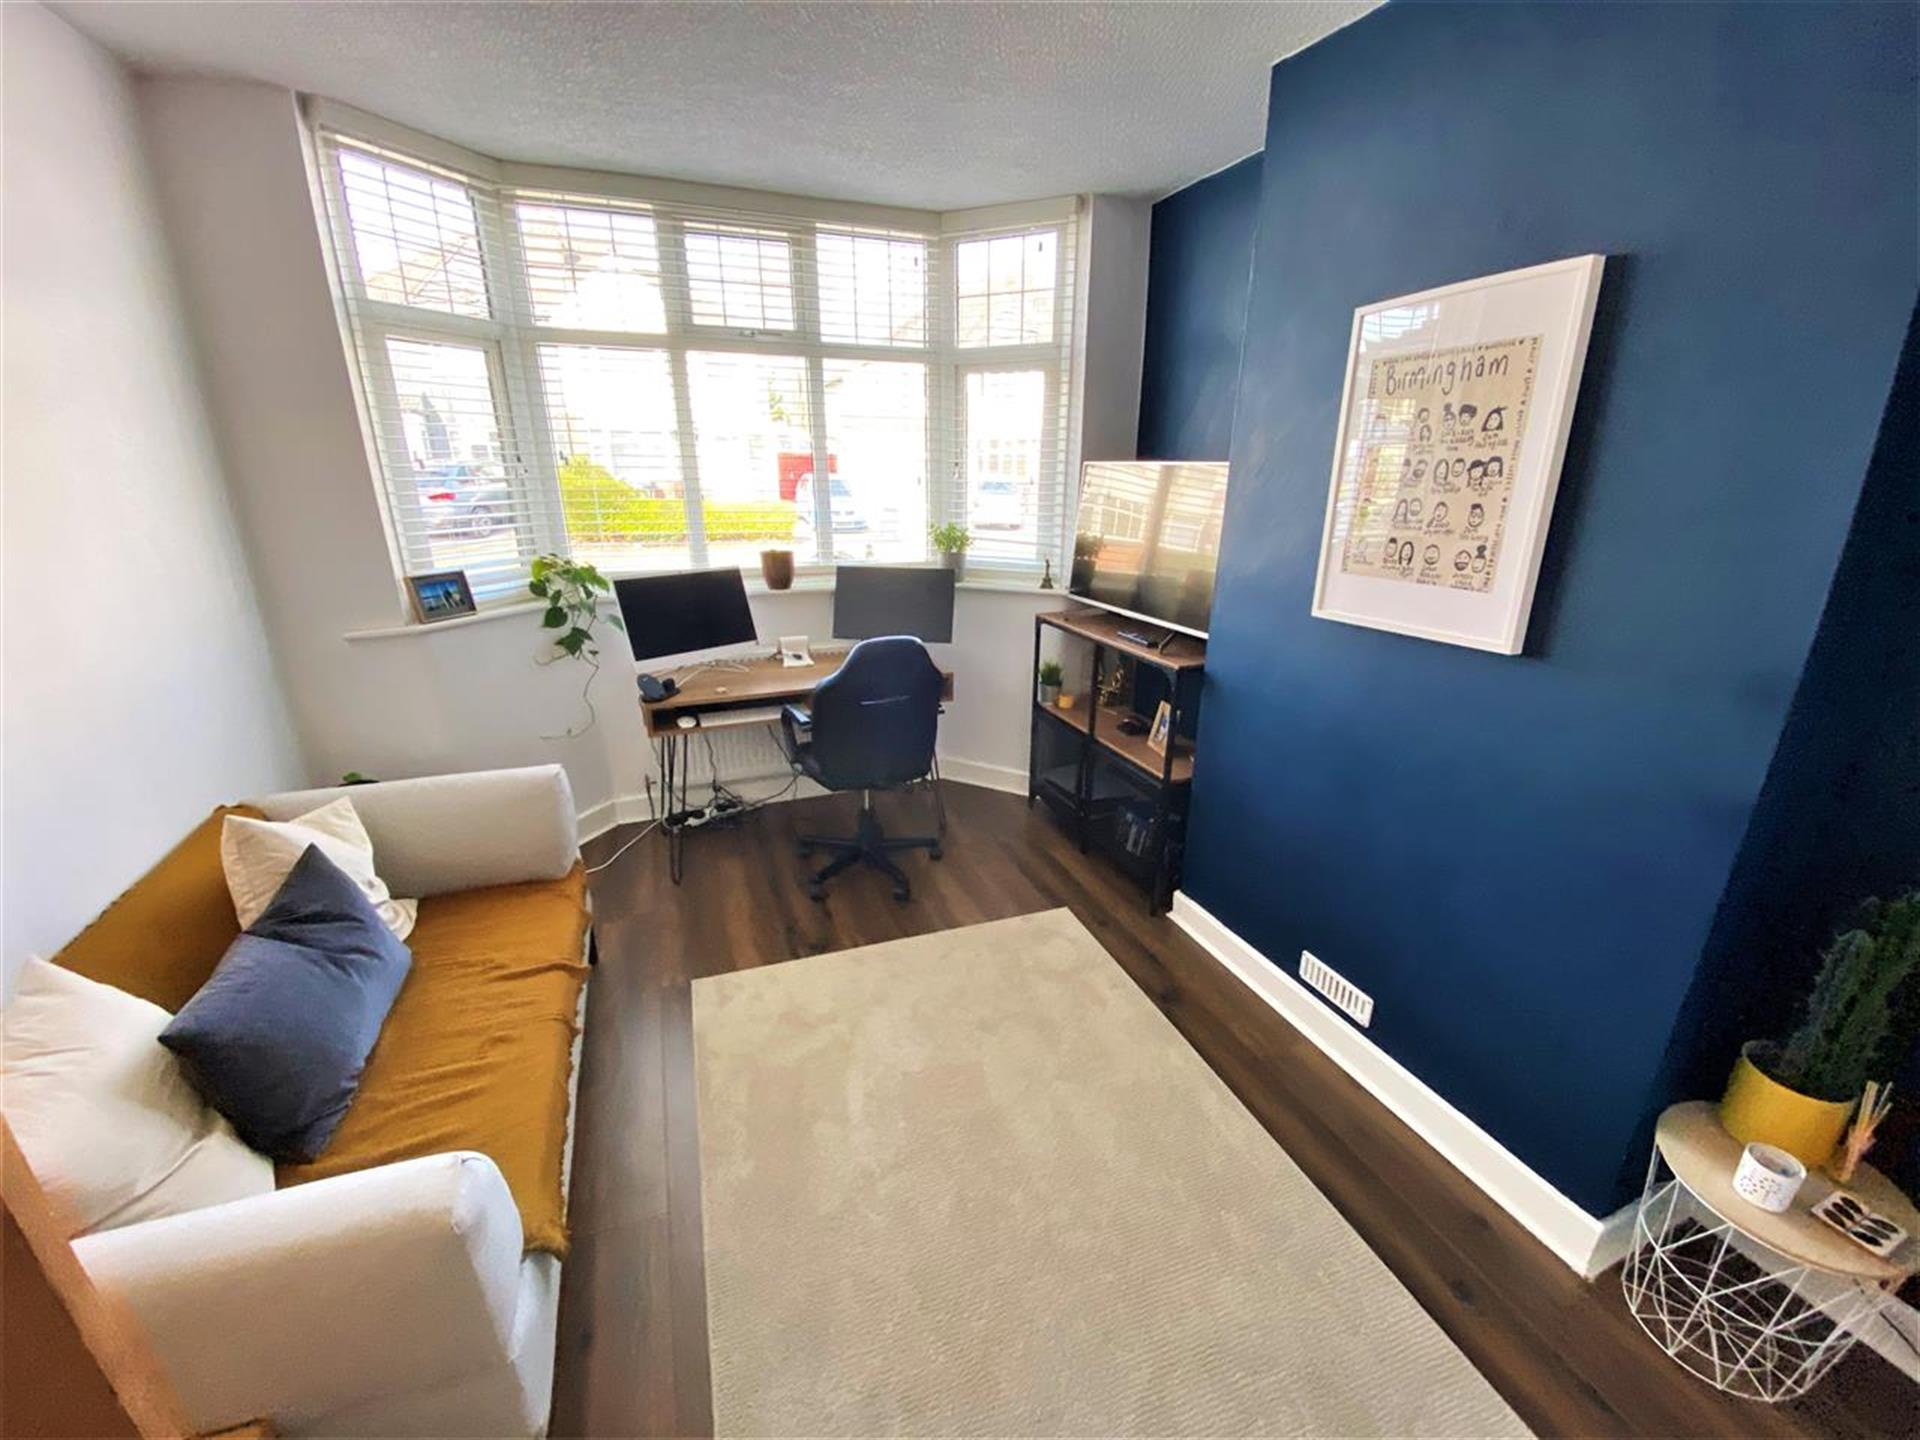 3 Bedroom Semi-detached House For Sale - Reception Room One